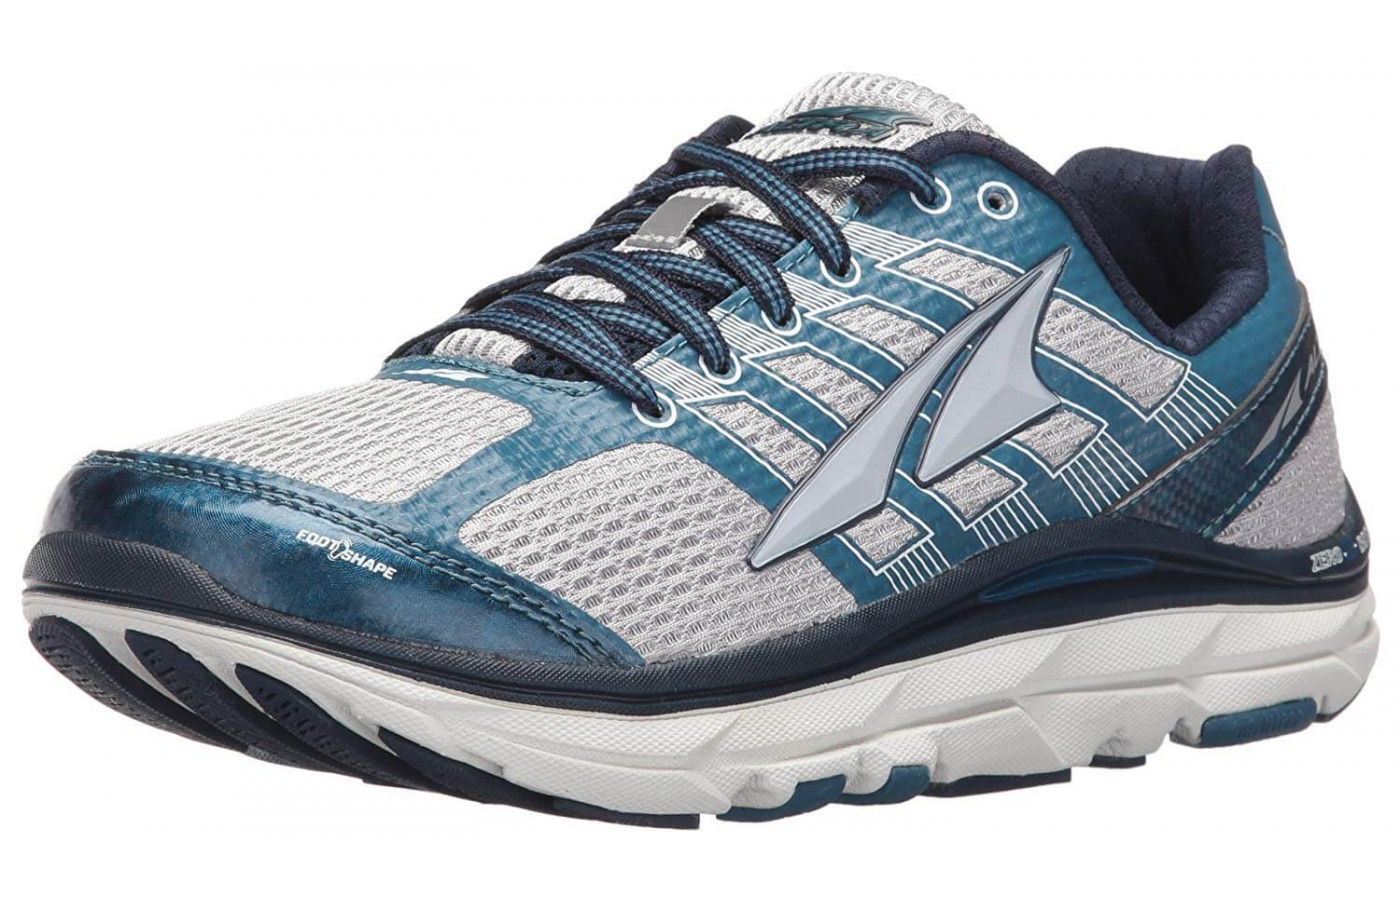 The Altra Provision 3.5 comes in a variety of colorways